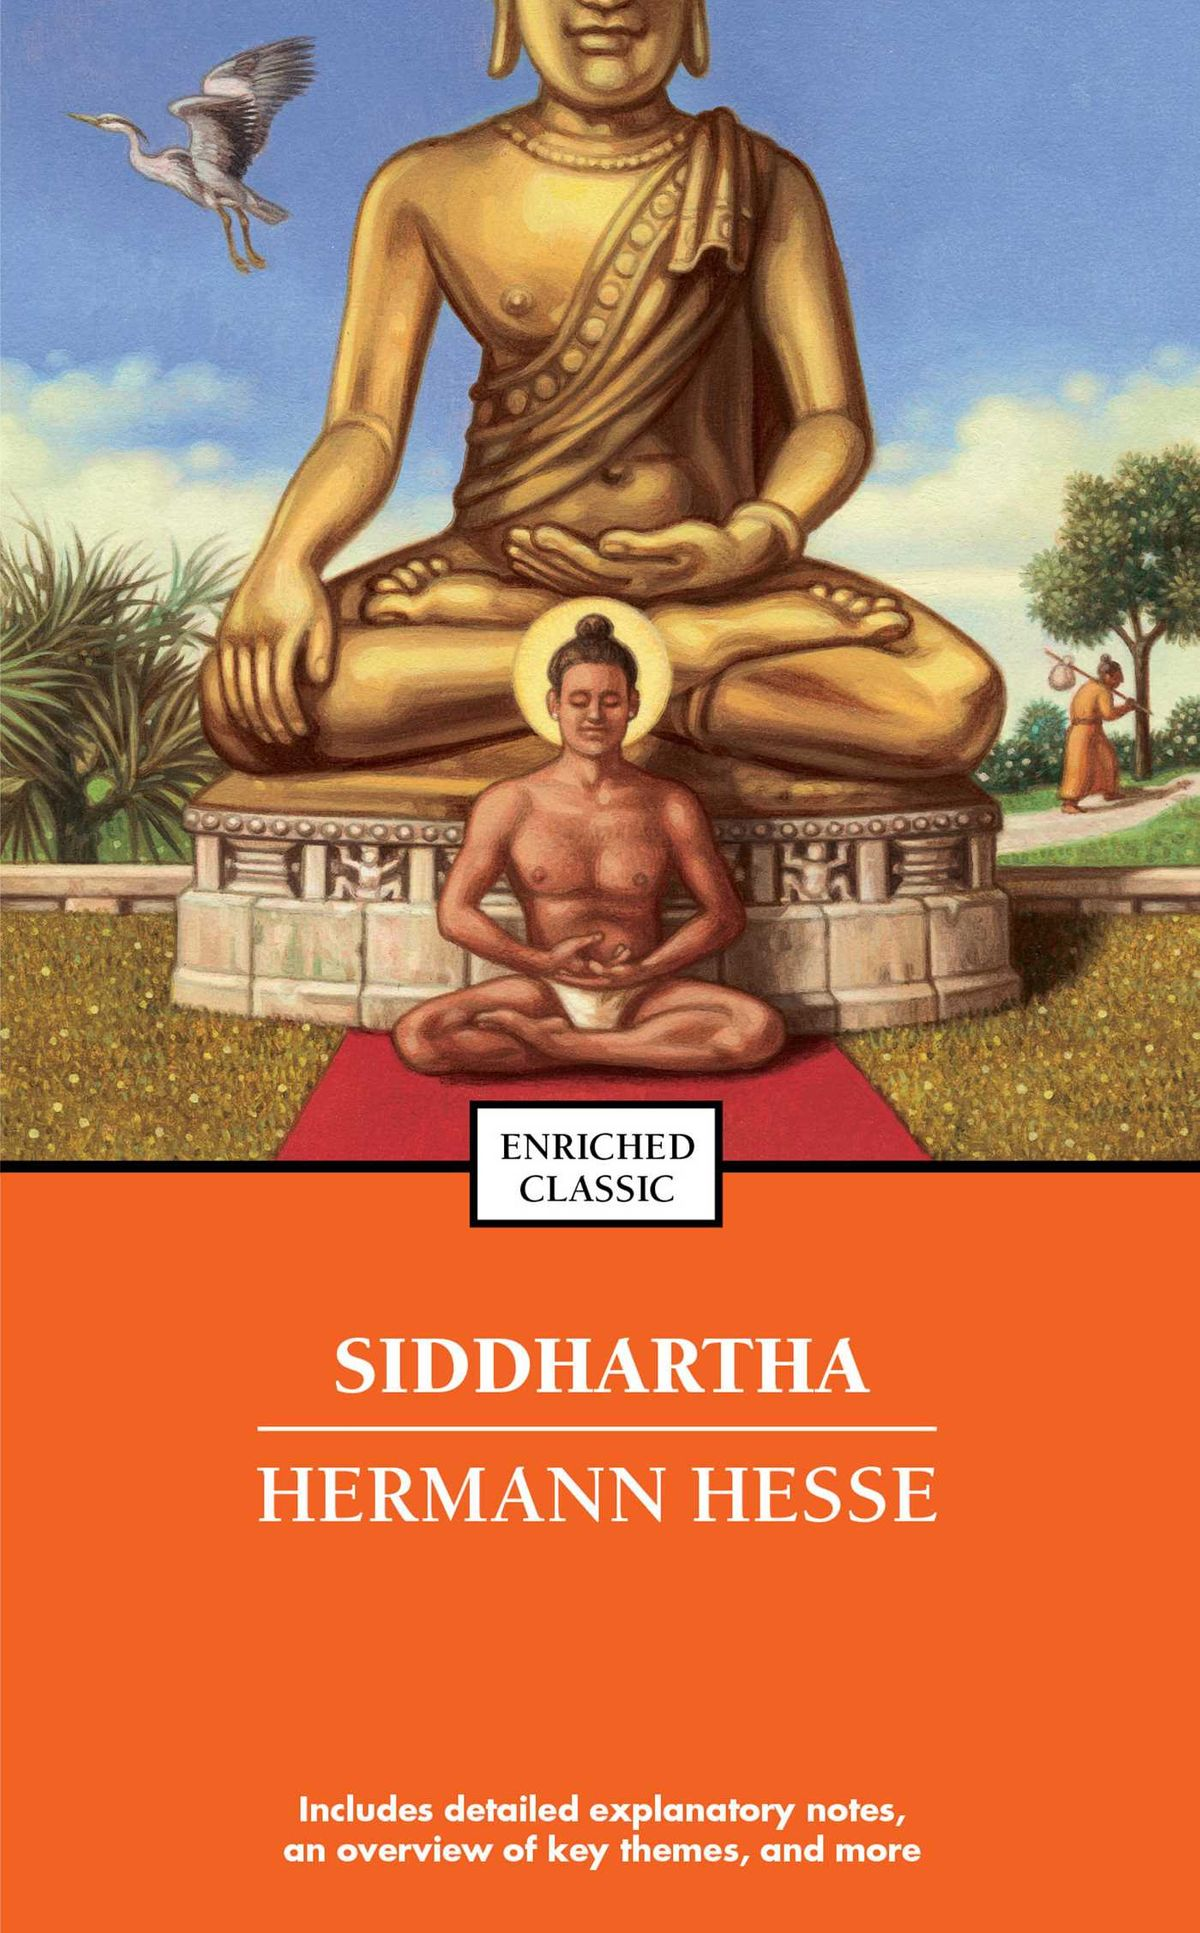 archetype in the book siddhartha Siddhartha is a novel by german author hermann hesse it was first published in 1921 publication in the united states occurred in 1951 by new the novel siddhartha is set in the indian subcontinent (islands off the southeastern tip of the indian peninsula), is often considered a part of the subcontinent.